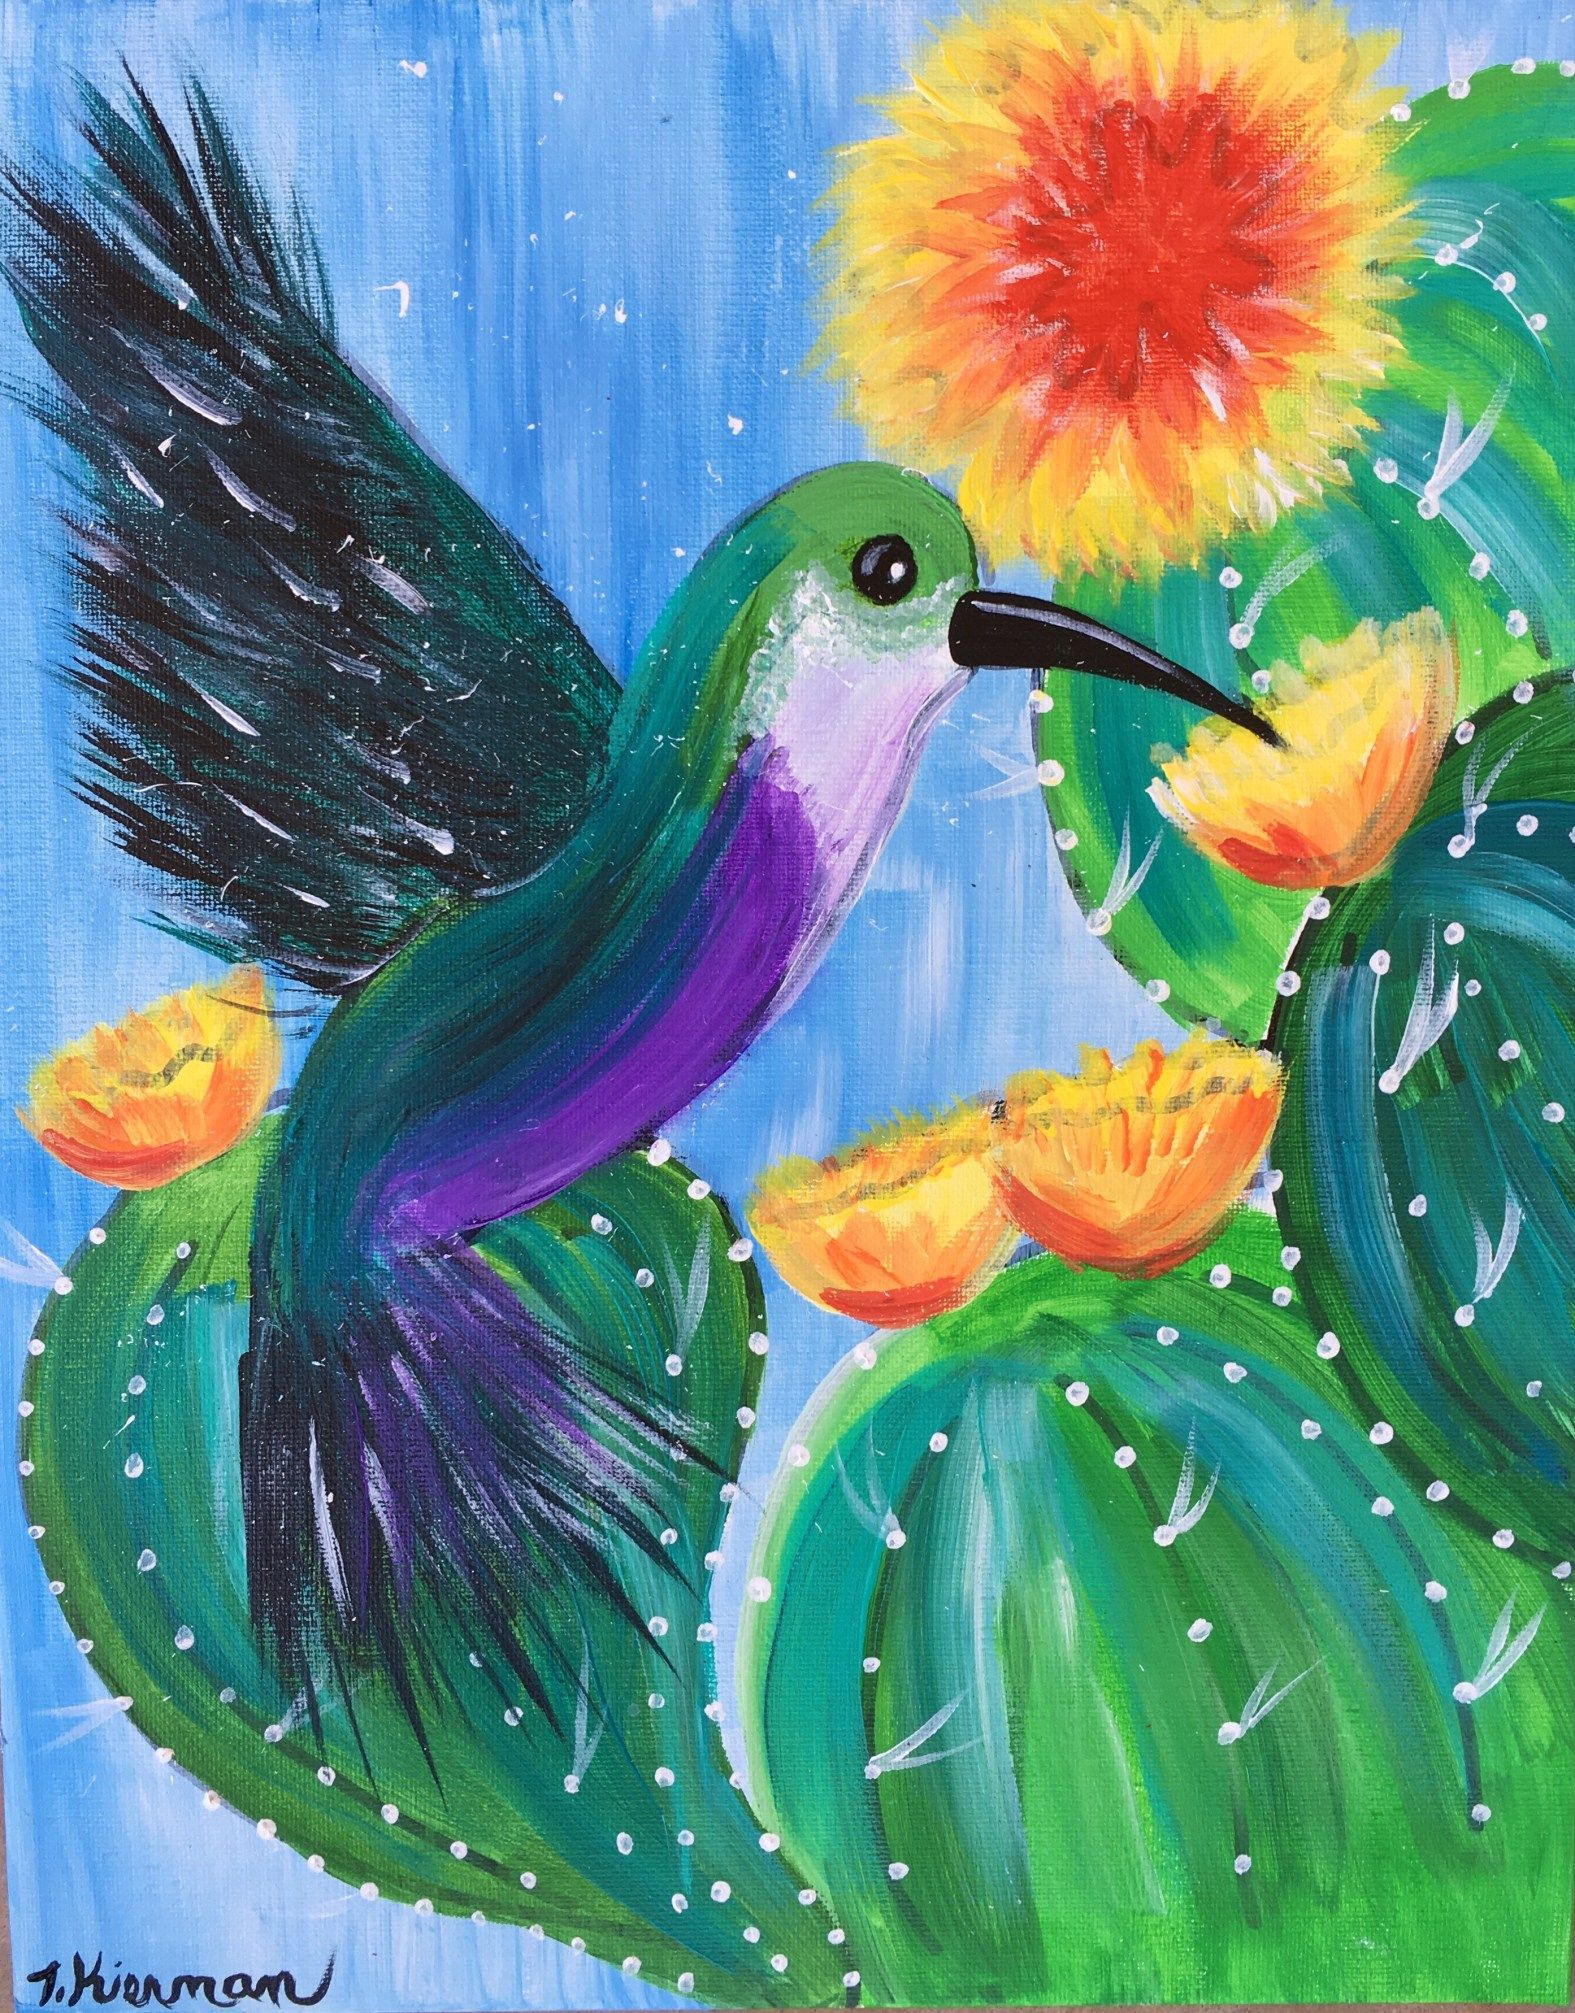 Hummingbird Painting - Step By Step Tutorial - For ...